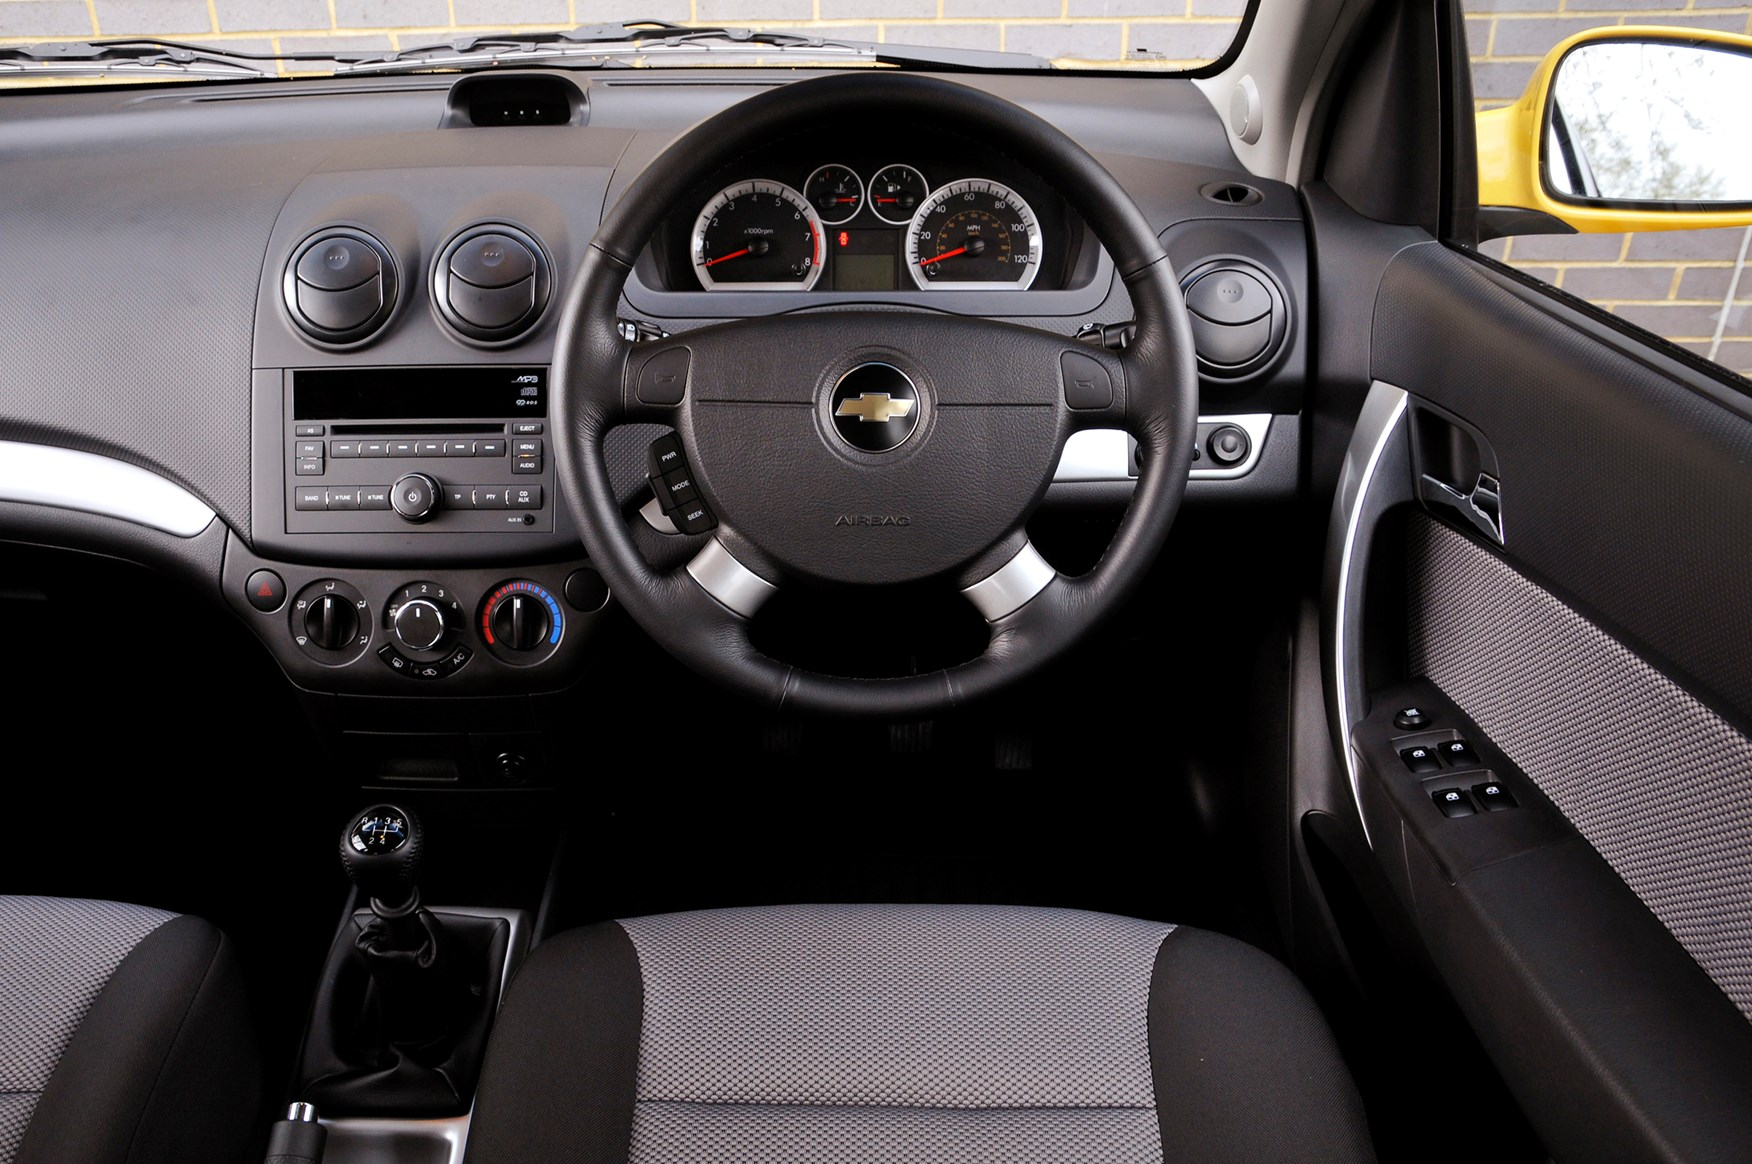 View all images of the chevrolet aveo 08 11